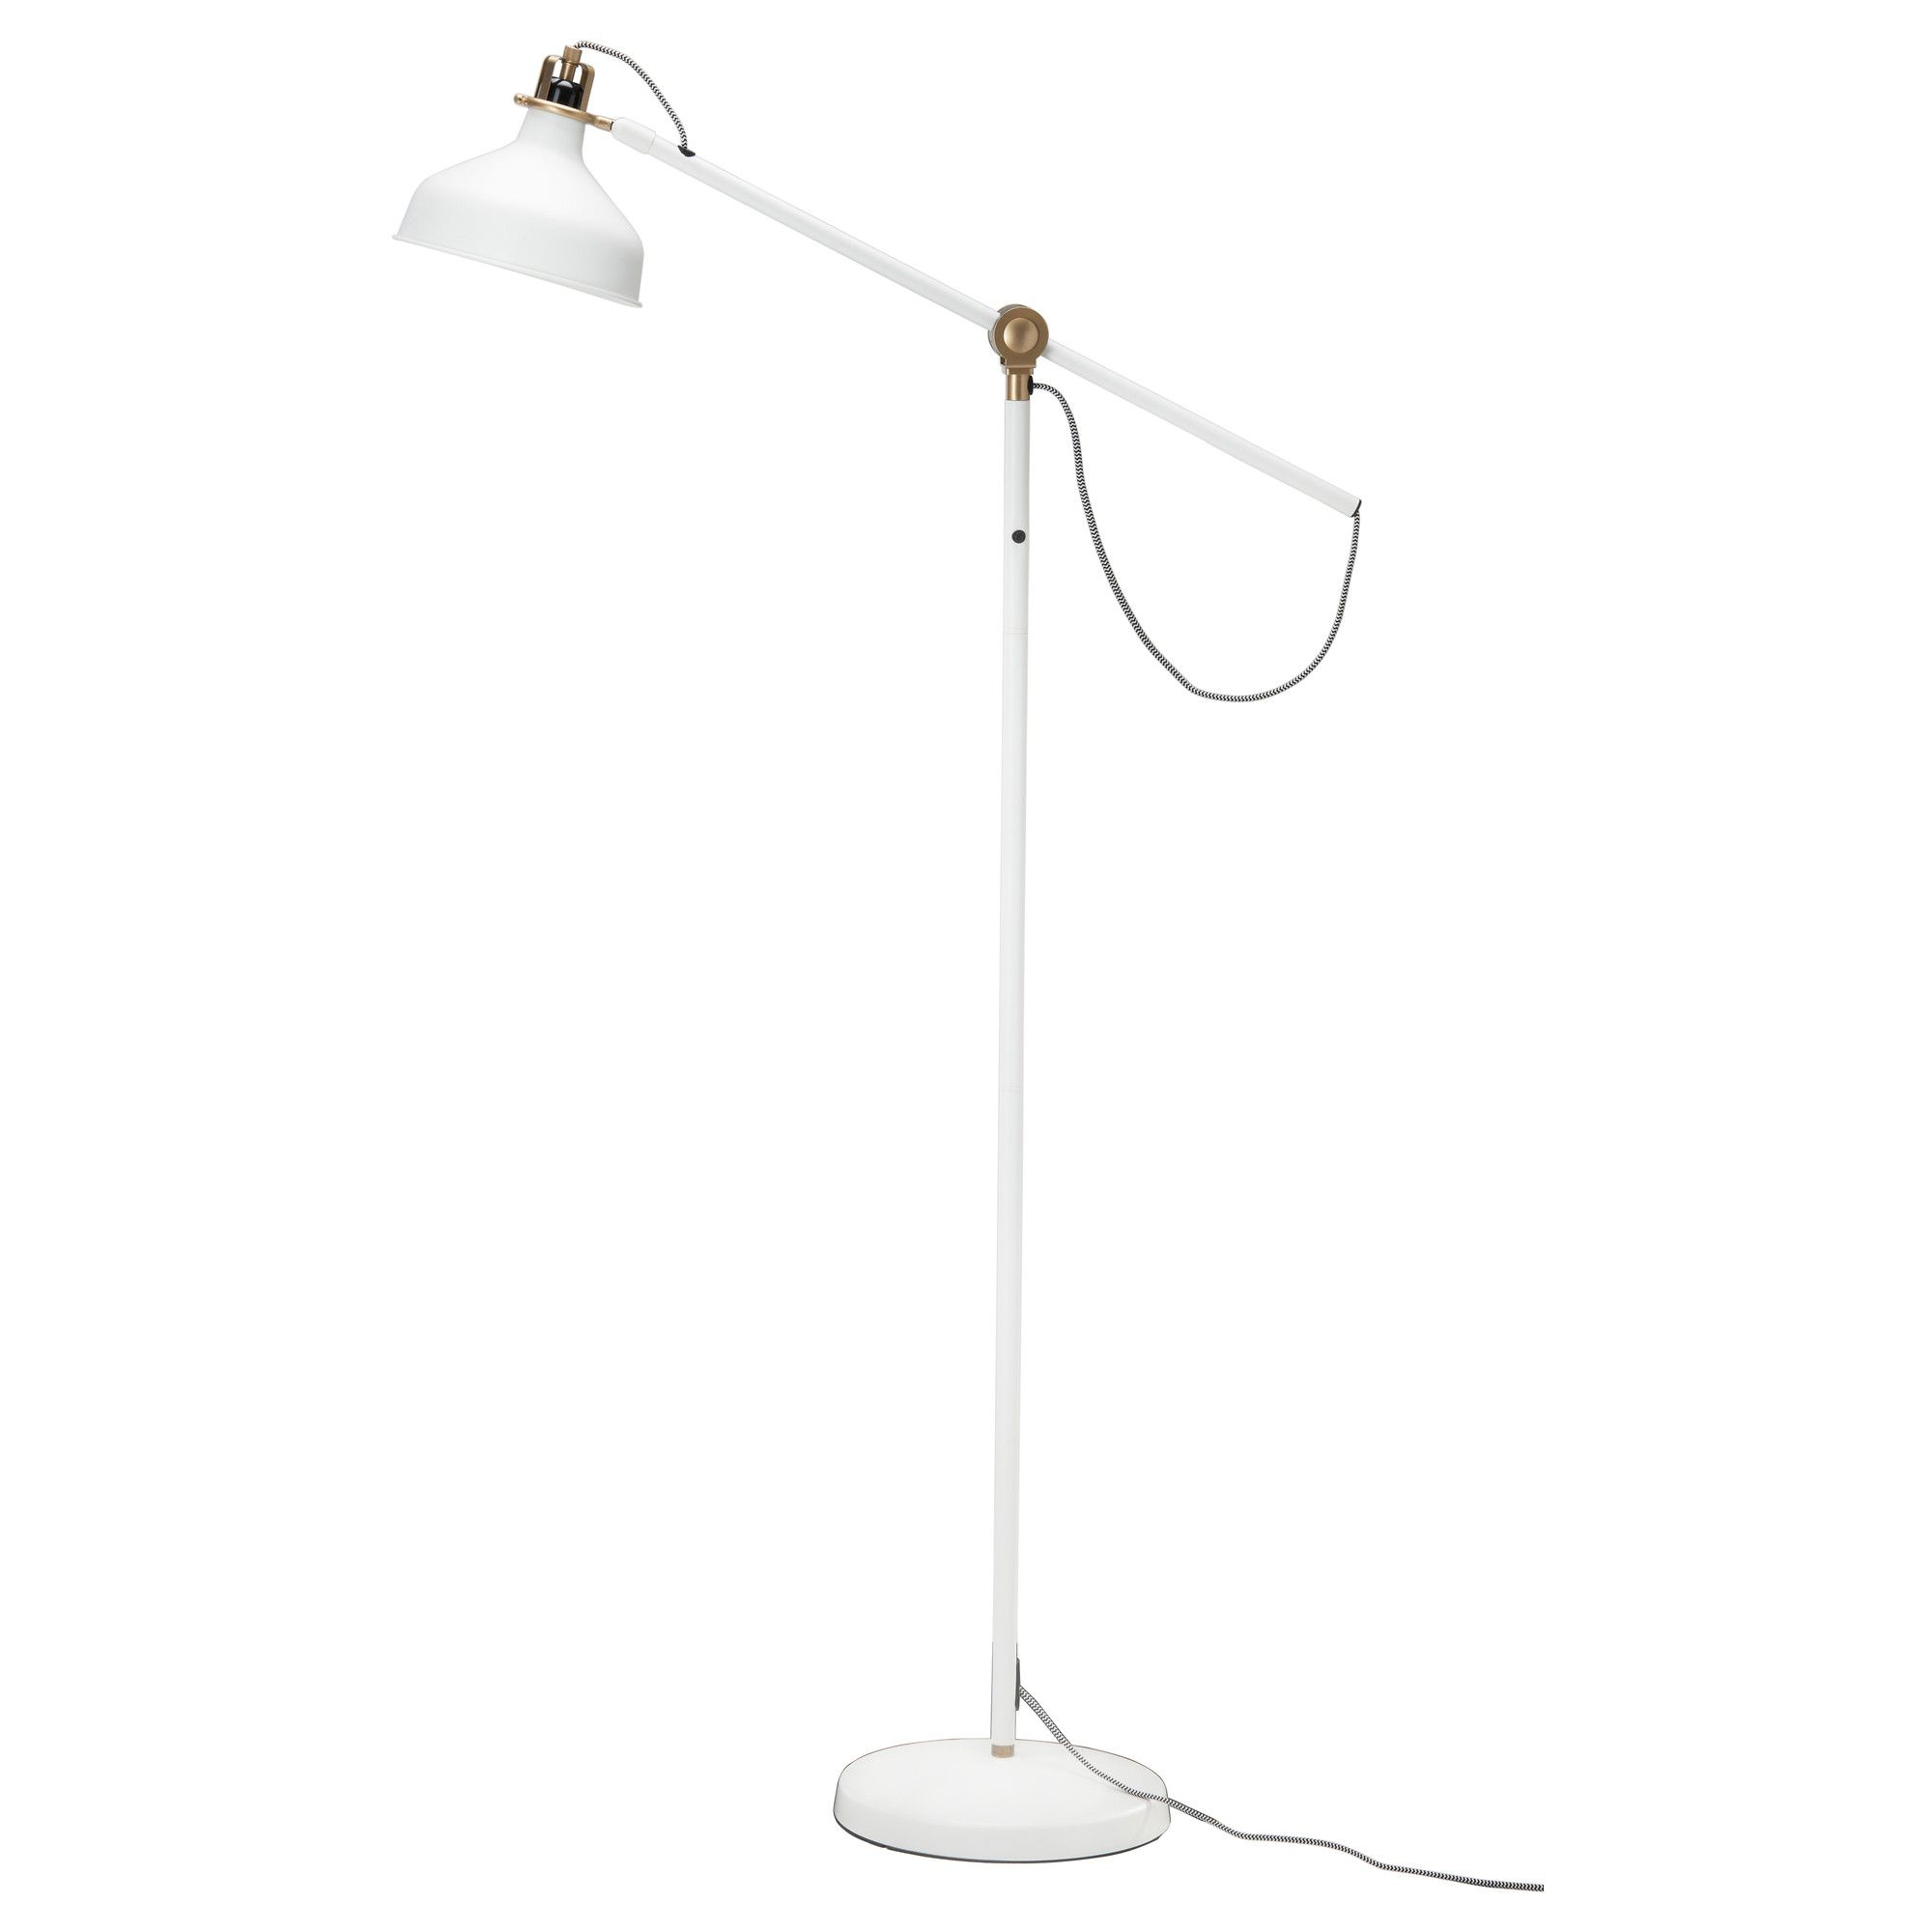 ikea ranarp lamp you can easily direct the light where you want it because the lamp arm and head are adjustable